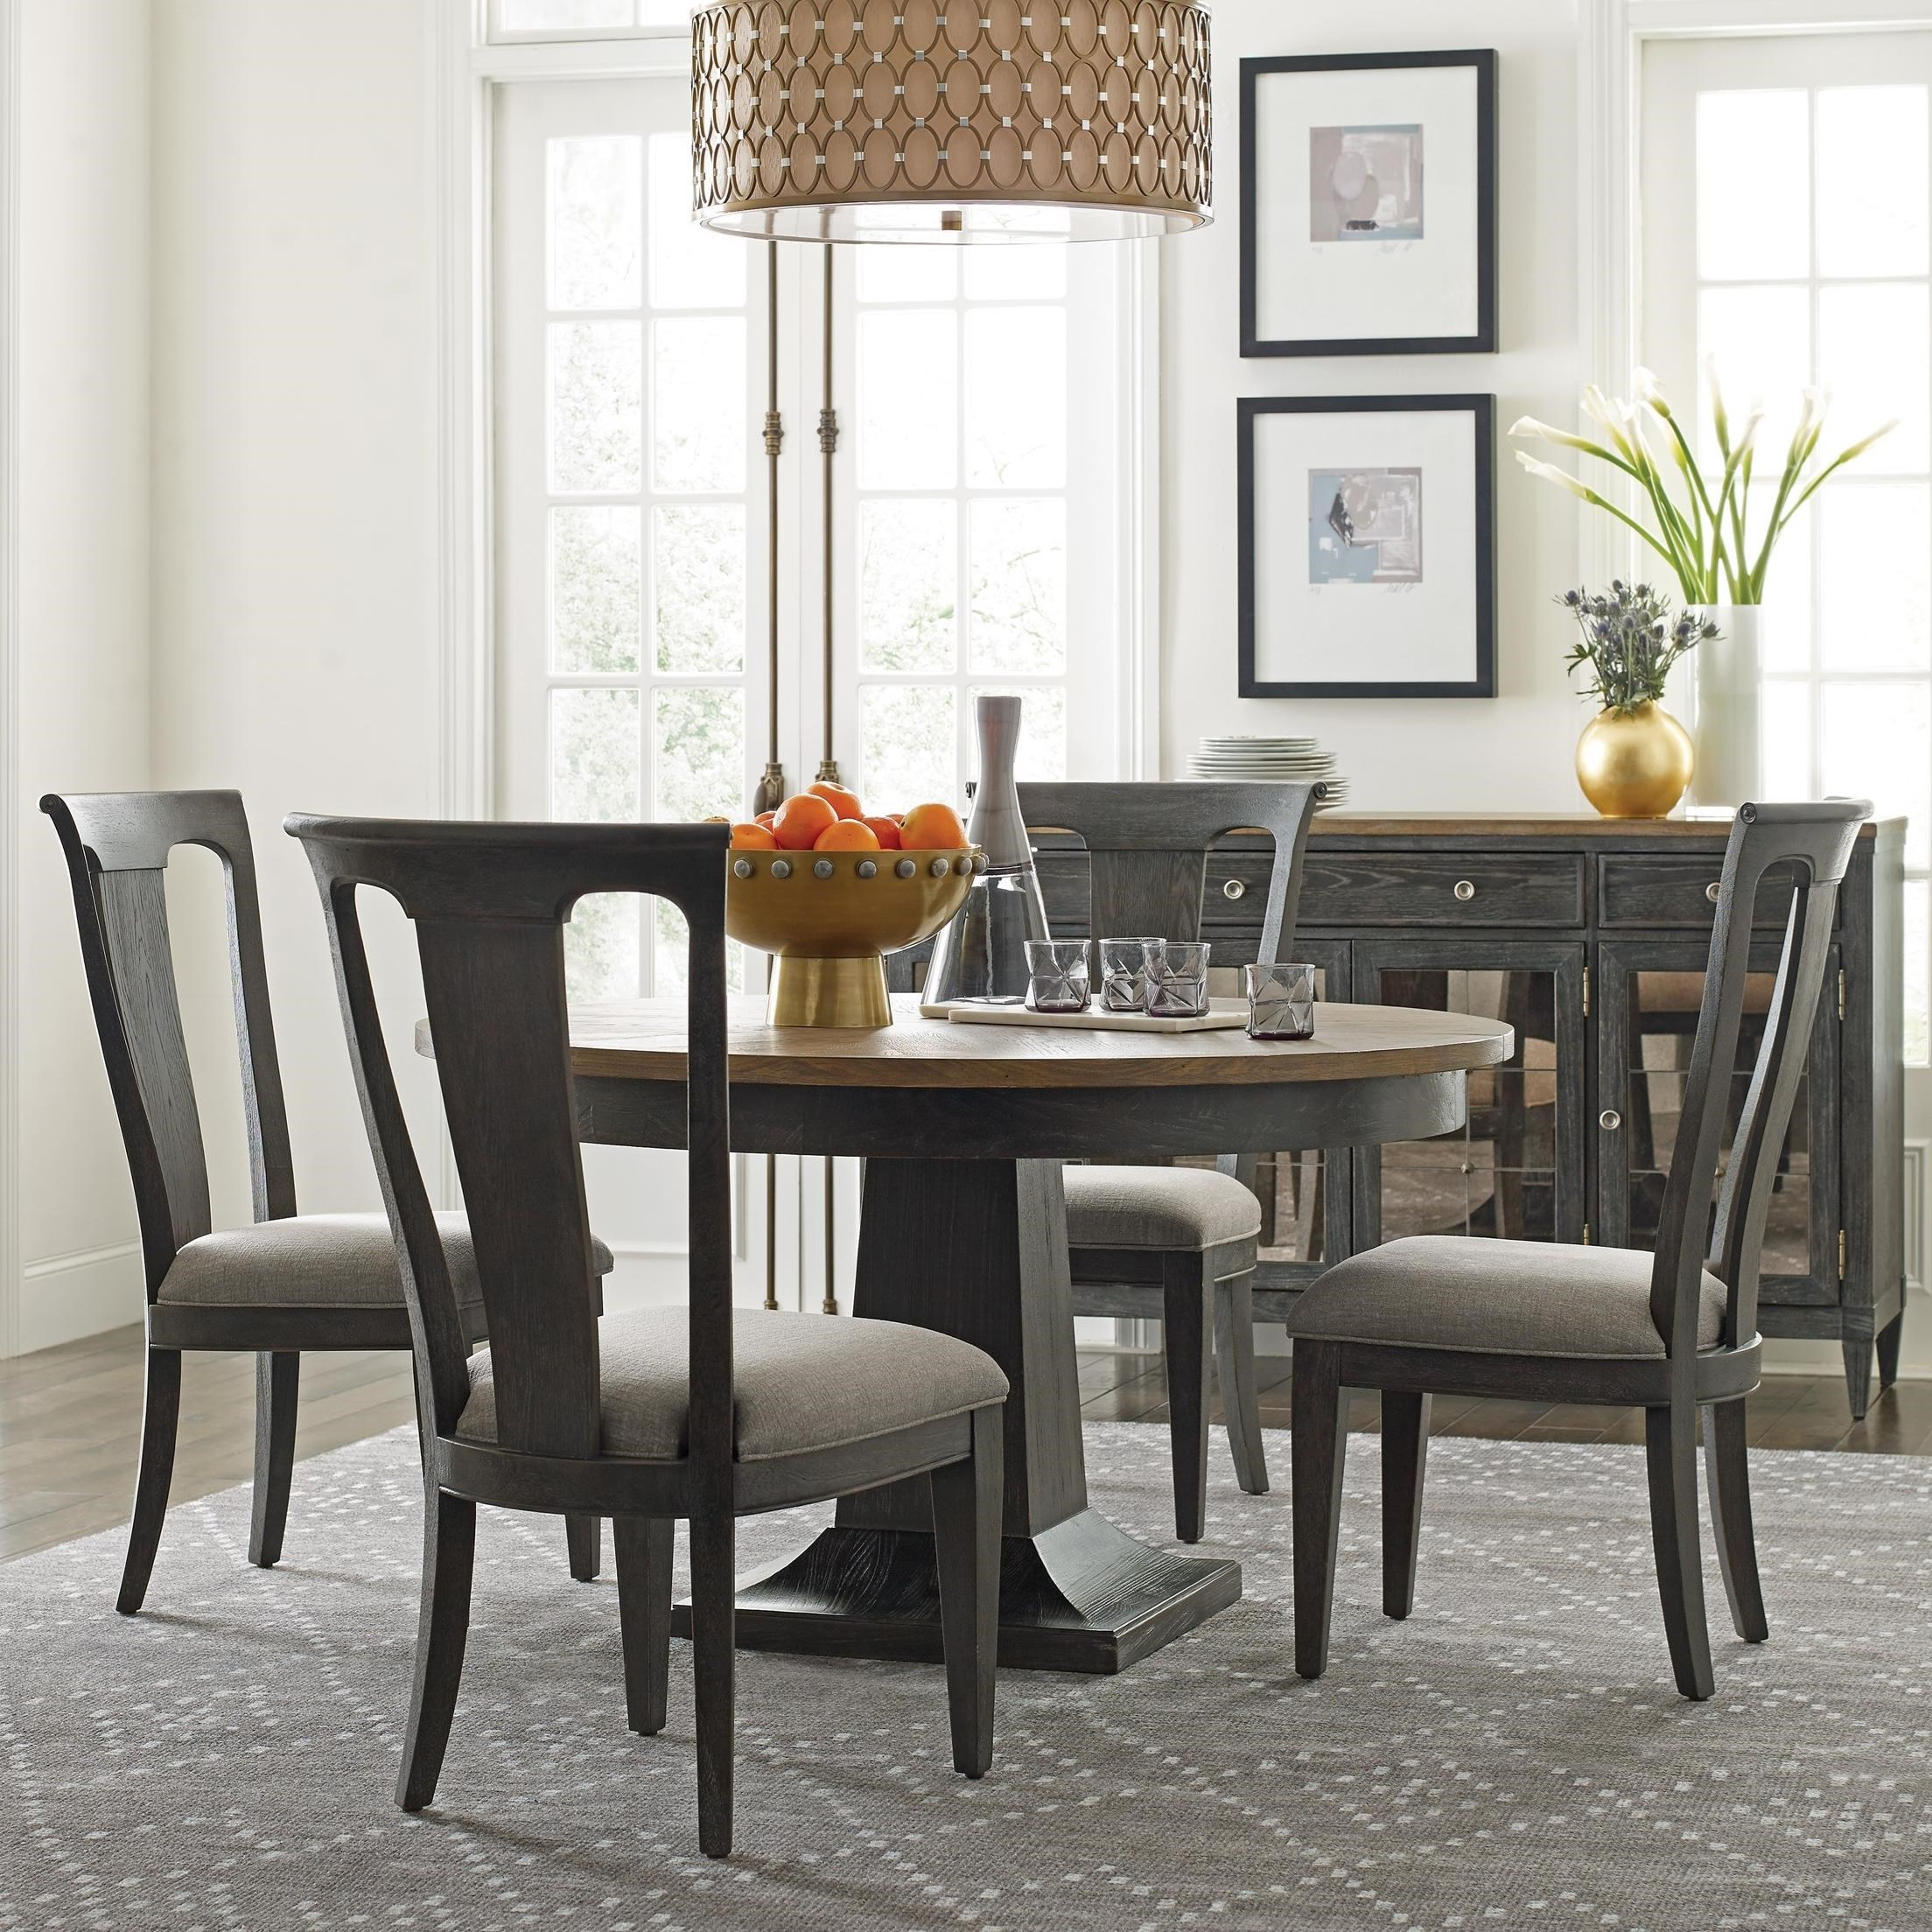 Ardennes Dining Table and Chair Set  by American Drew at Mueller Furniture